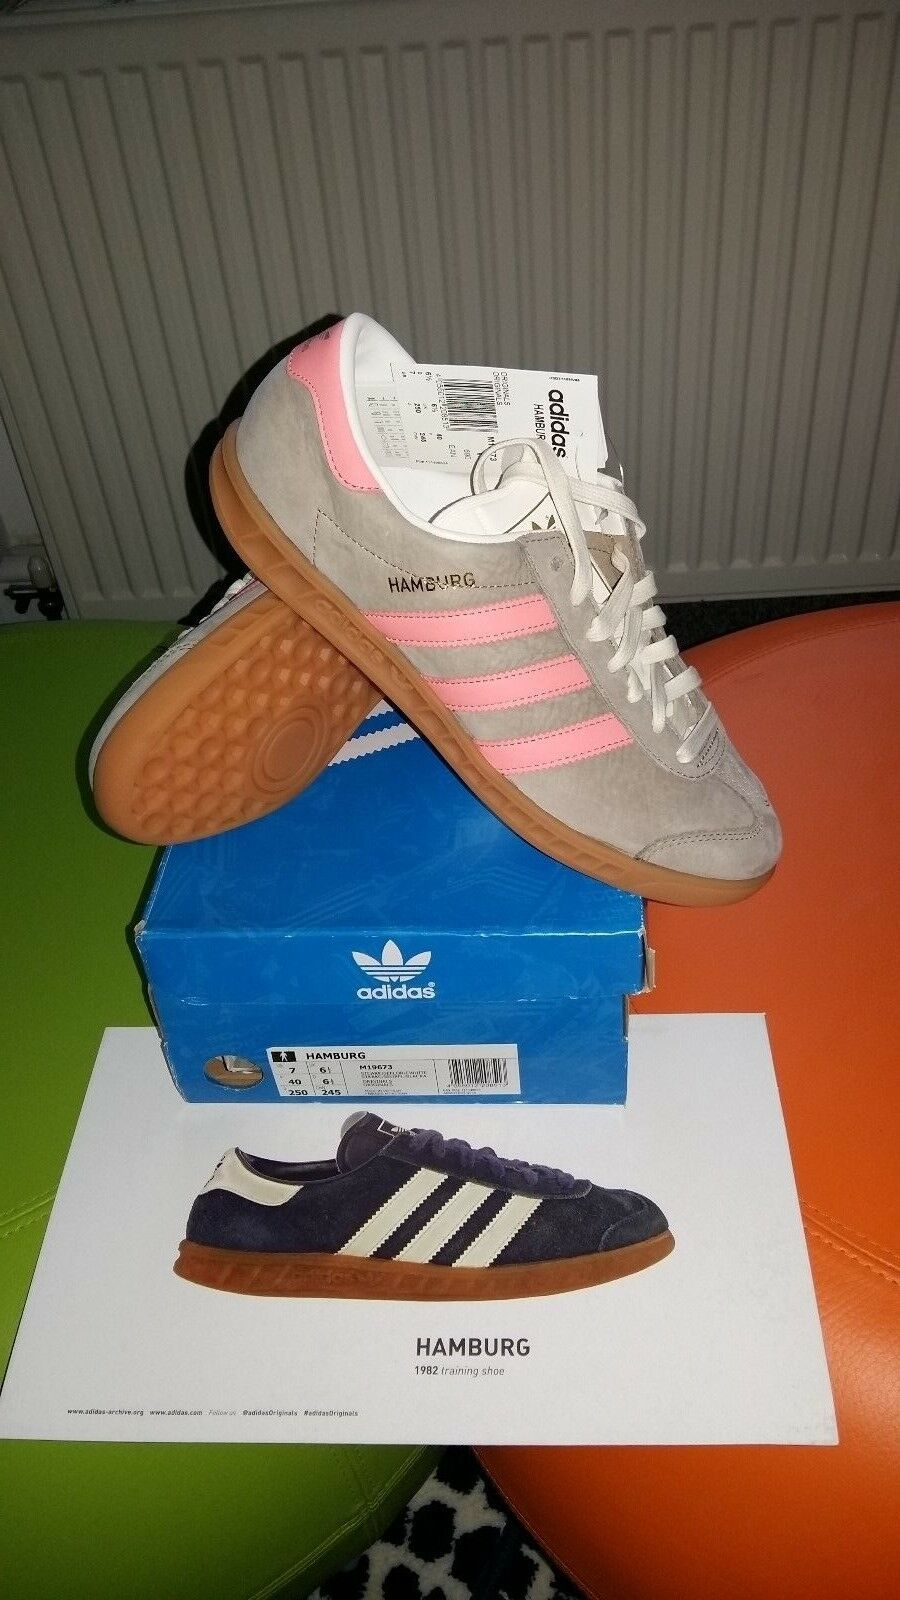 the latest fc339 bd657 Deadstock Adidas Adidas Adidas Hamburg Originals... Unisexe Baskets taille  6.5 UK... 40 euros 6424fc